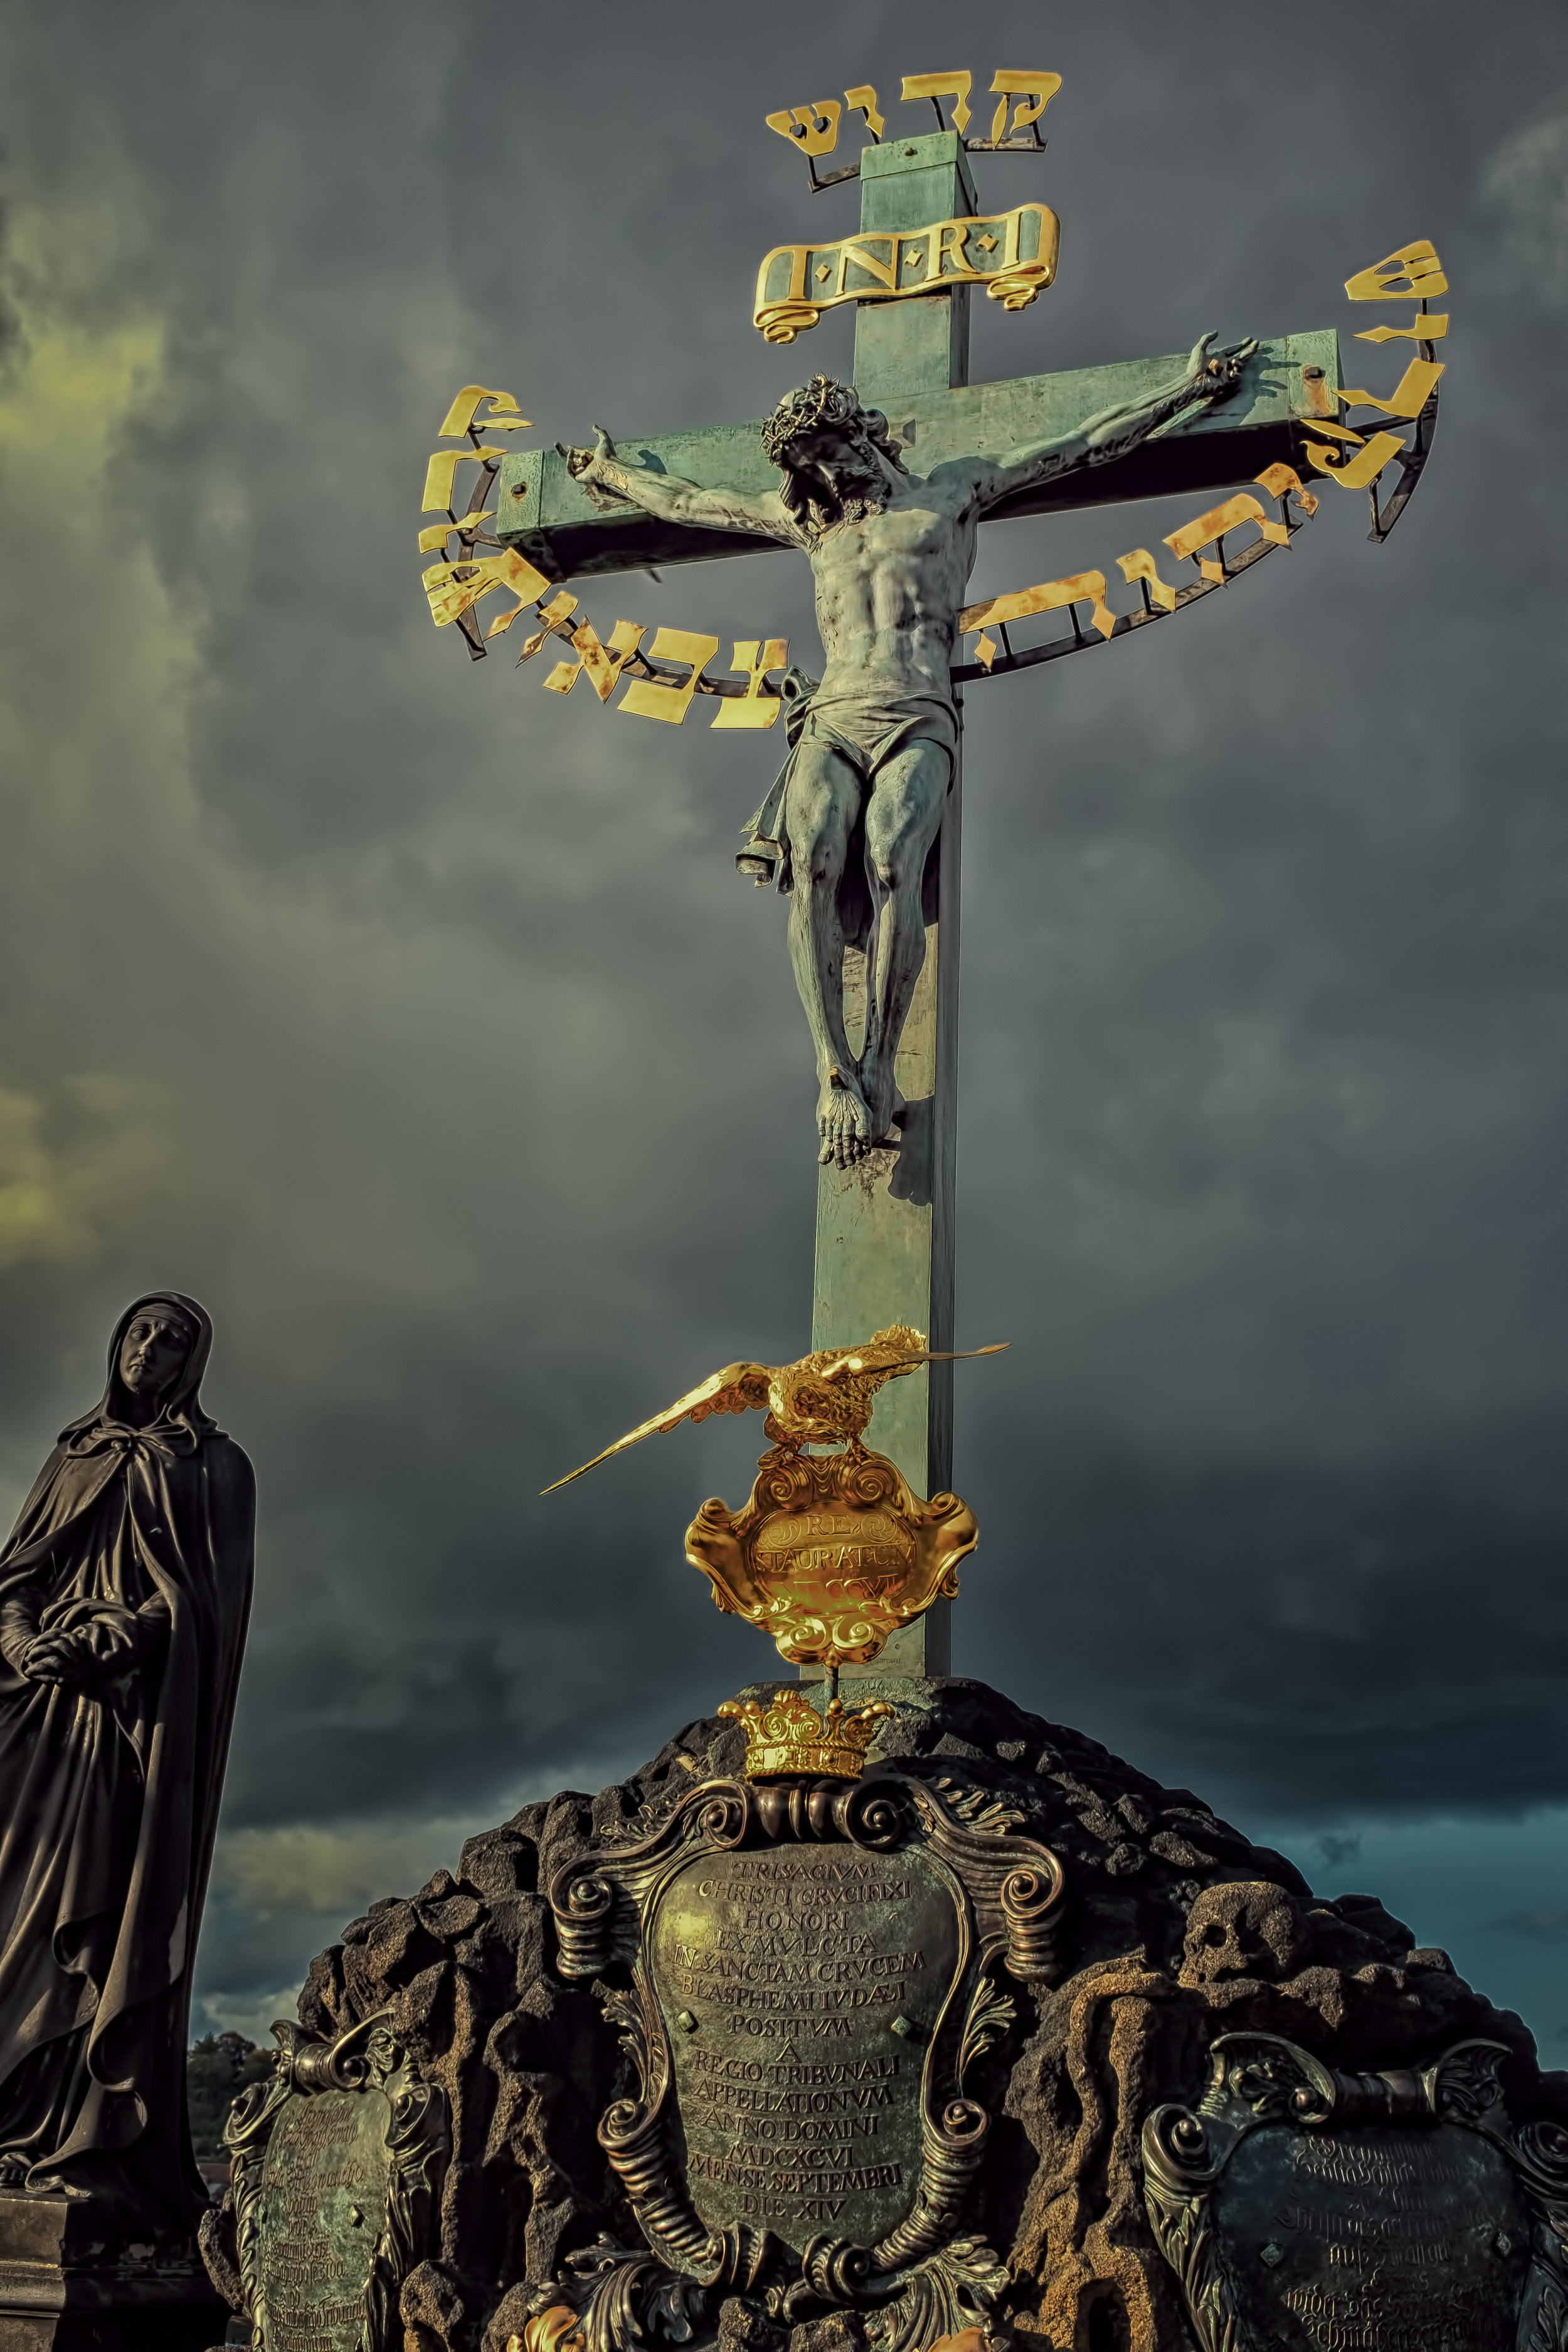 This photograph was taken on a recent tour of Central Europe. This is the Charles Bridge in Prague which is lined with religious iconography including this crucifixion scene. I lost track of the number of cathedrals and shrines we visited, but they all had one common denominator; great displays of wealth and splendor. I have always been struck by the dichotomy of extreme poverty in the shadows of great wealth. Particularly when that wealth is embodied by the Christian faith; a faith based on humility and the grace of the dispossessed. Go inside any of these cathedrals or walk across the Charles Bridge and you will find the faithful, but also the curious, the lost, the poor. Walk a few blocks in any direction and you will see more of the same. I cannot help but think that some of this wealth could better serve the poor I saw on Charles Bridge.